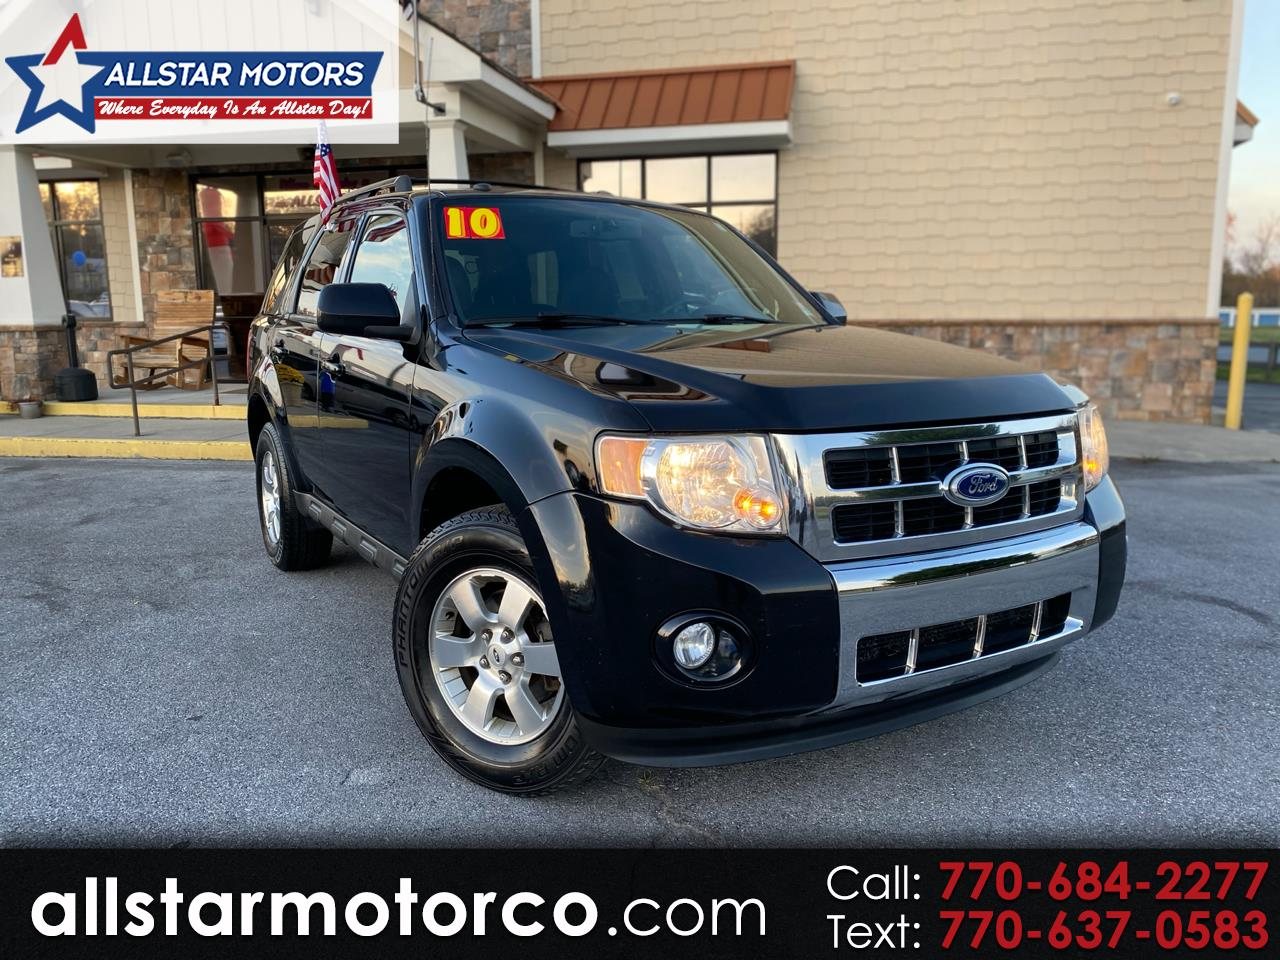 Ford Escape FWD 4dr Limited 2010